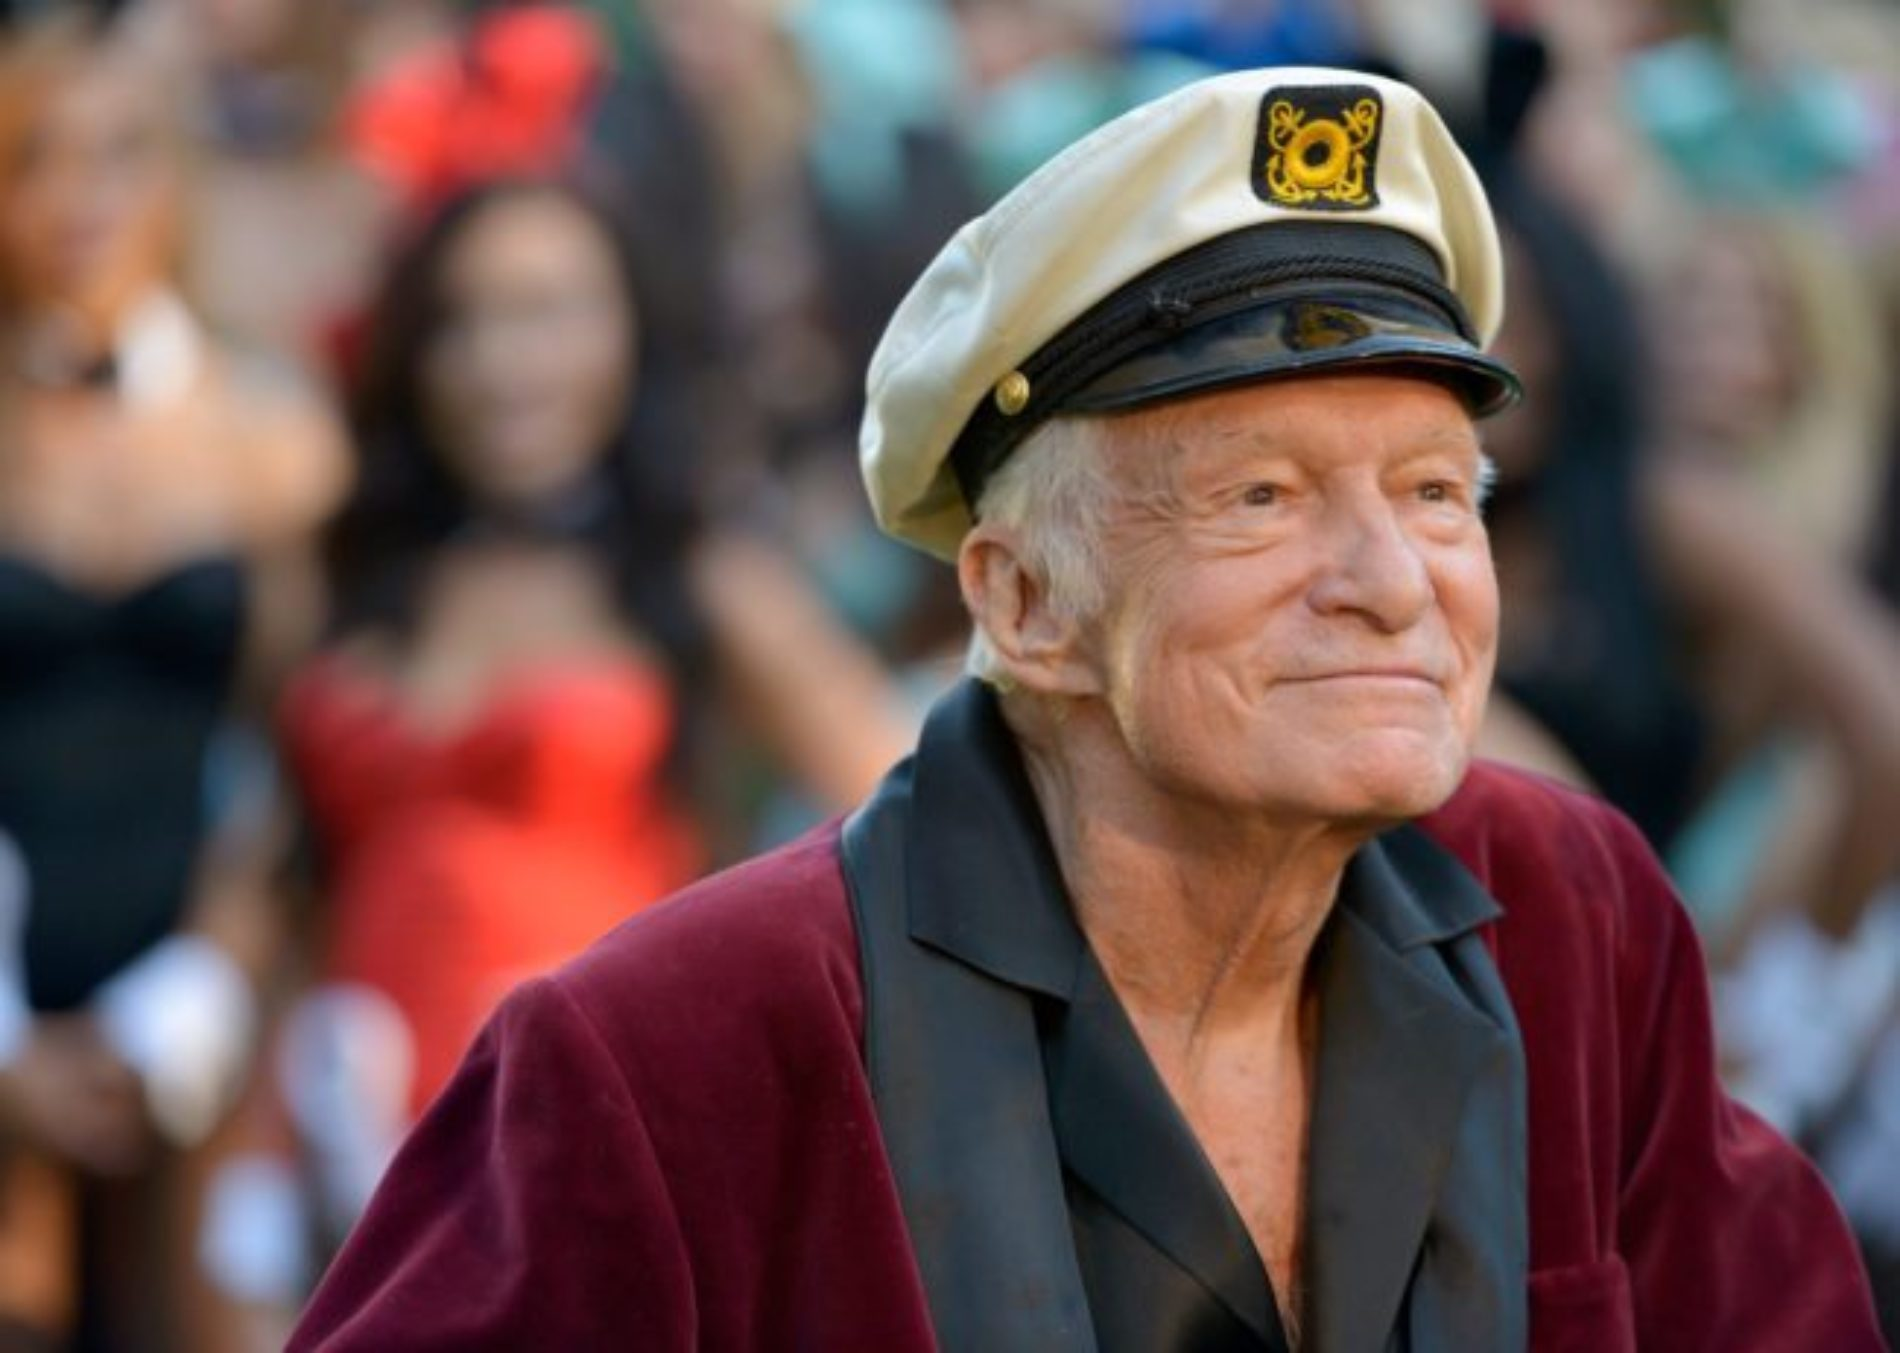 What Playboy founder Hugh Hefner thought about gay rights and AIDS